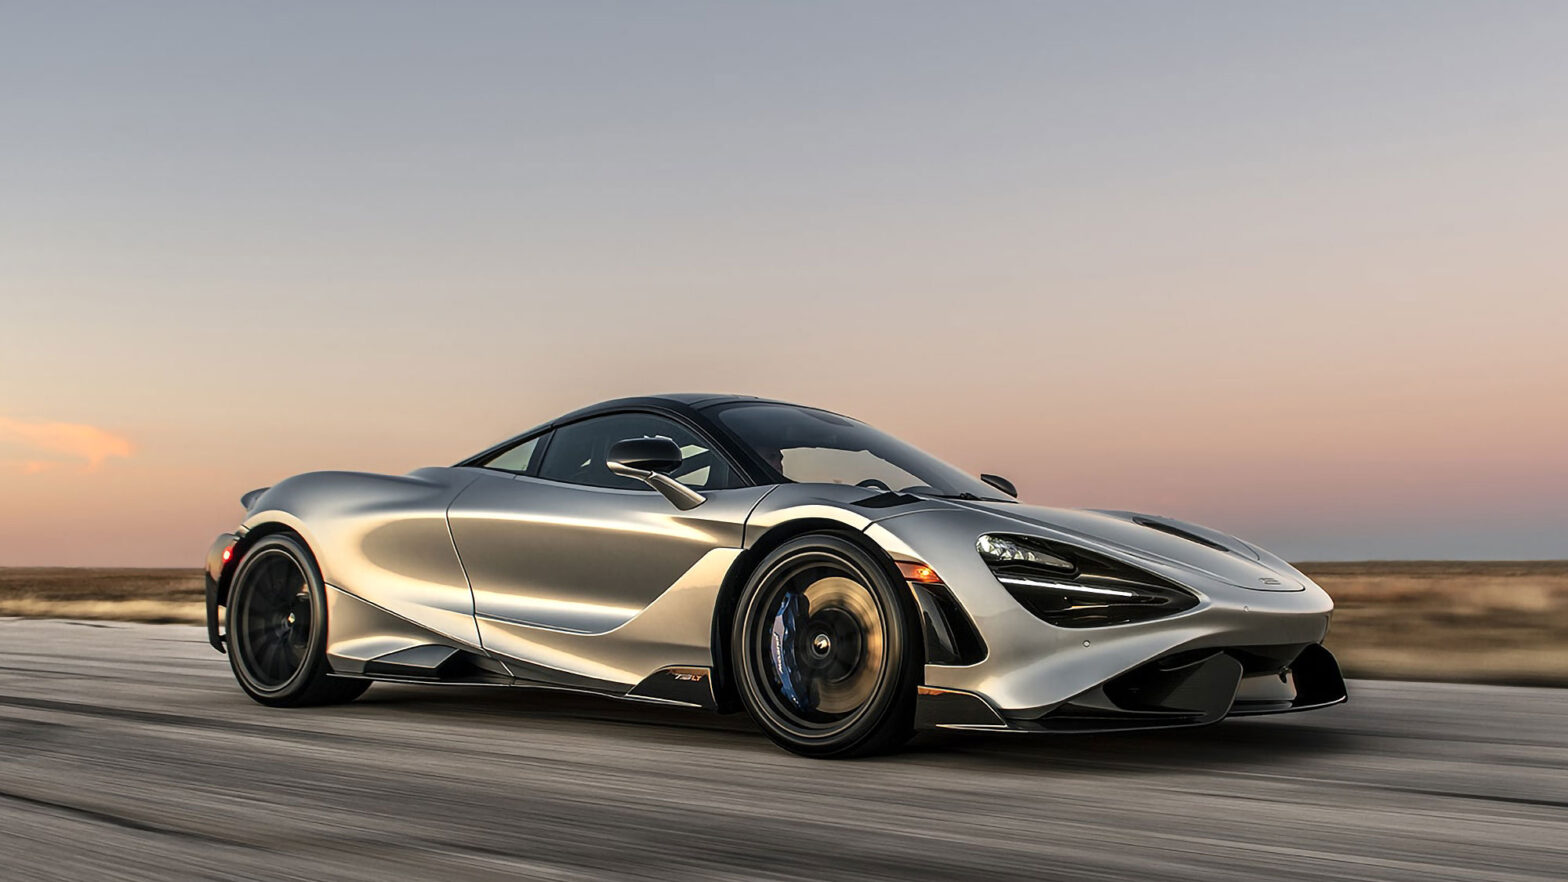 Hennessey HPE1000 for McLaren 765LT Supercar